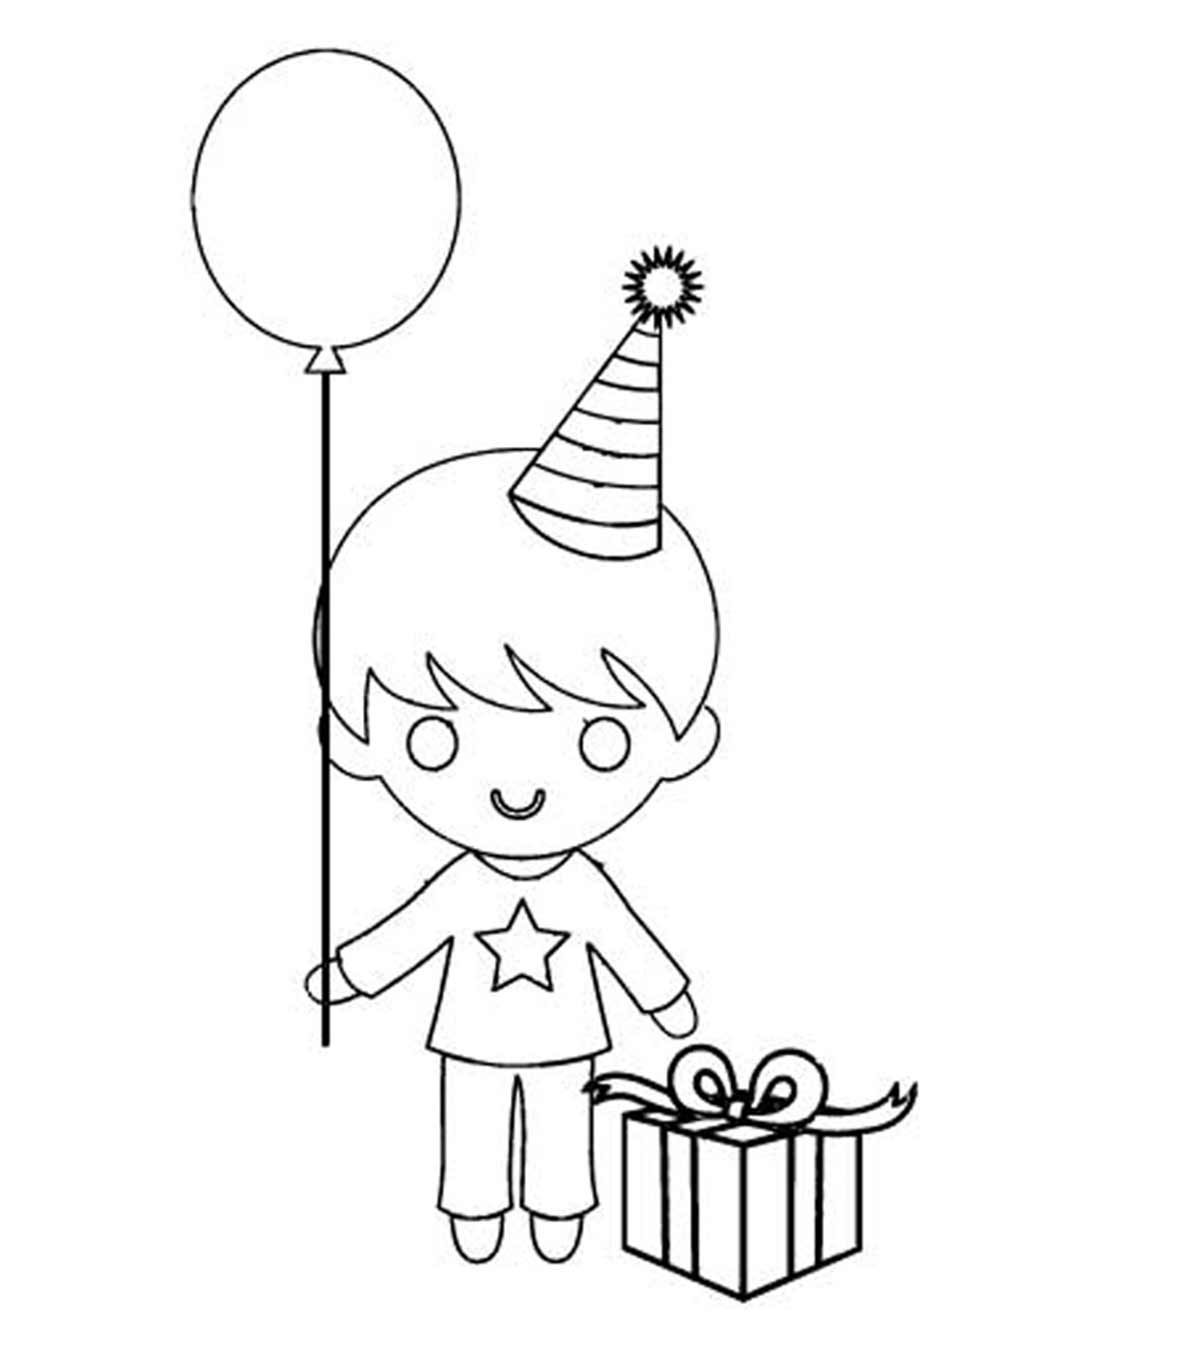 Ee45c3 Joyous Cupcake Coloring Pages Cupcake Coloring